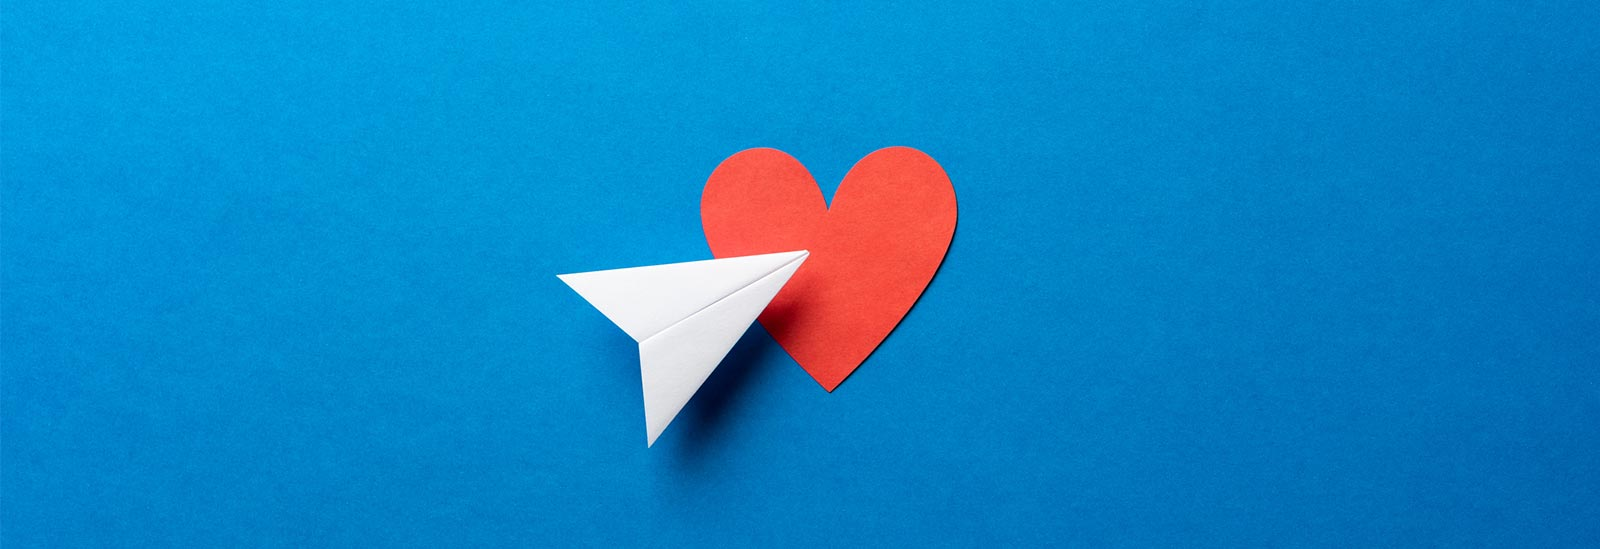 Paper Airplane and Heart Because you can email us!